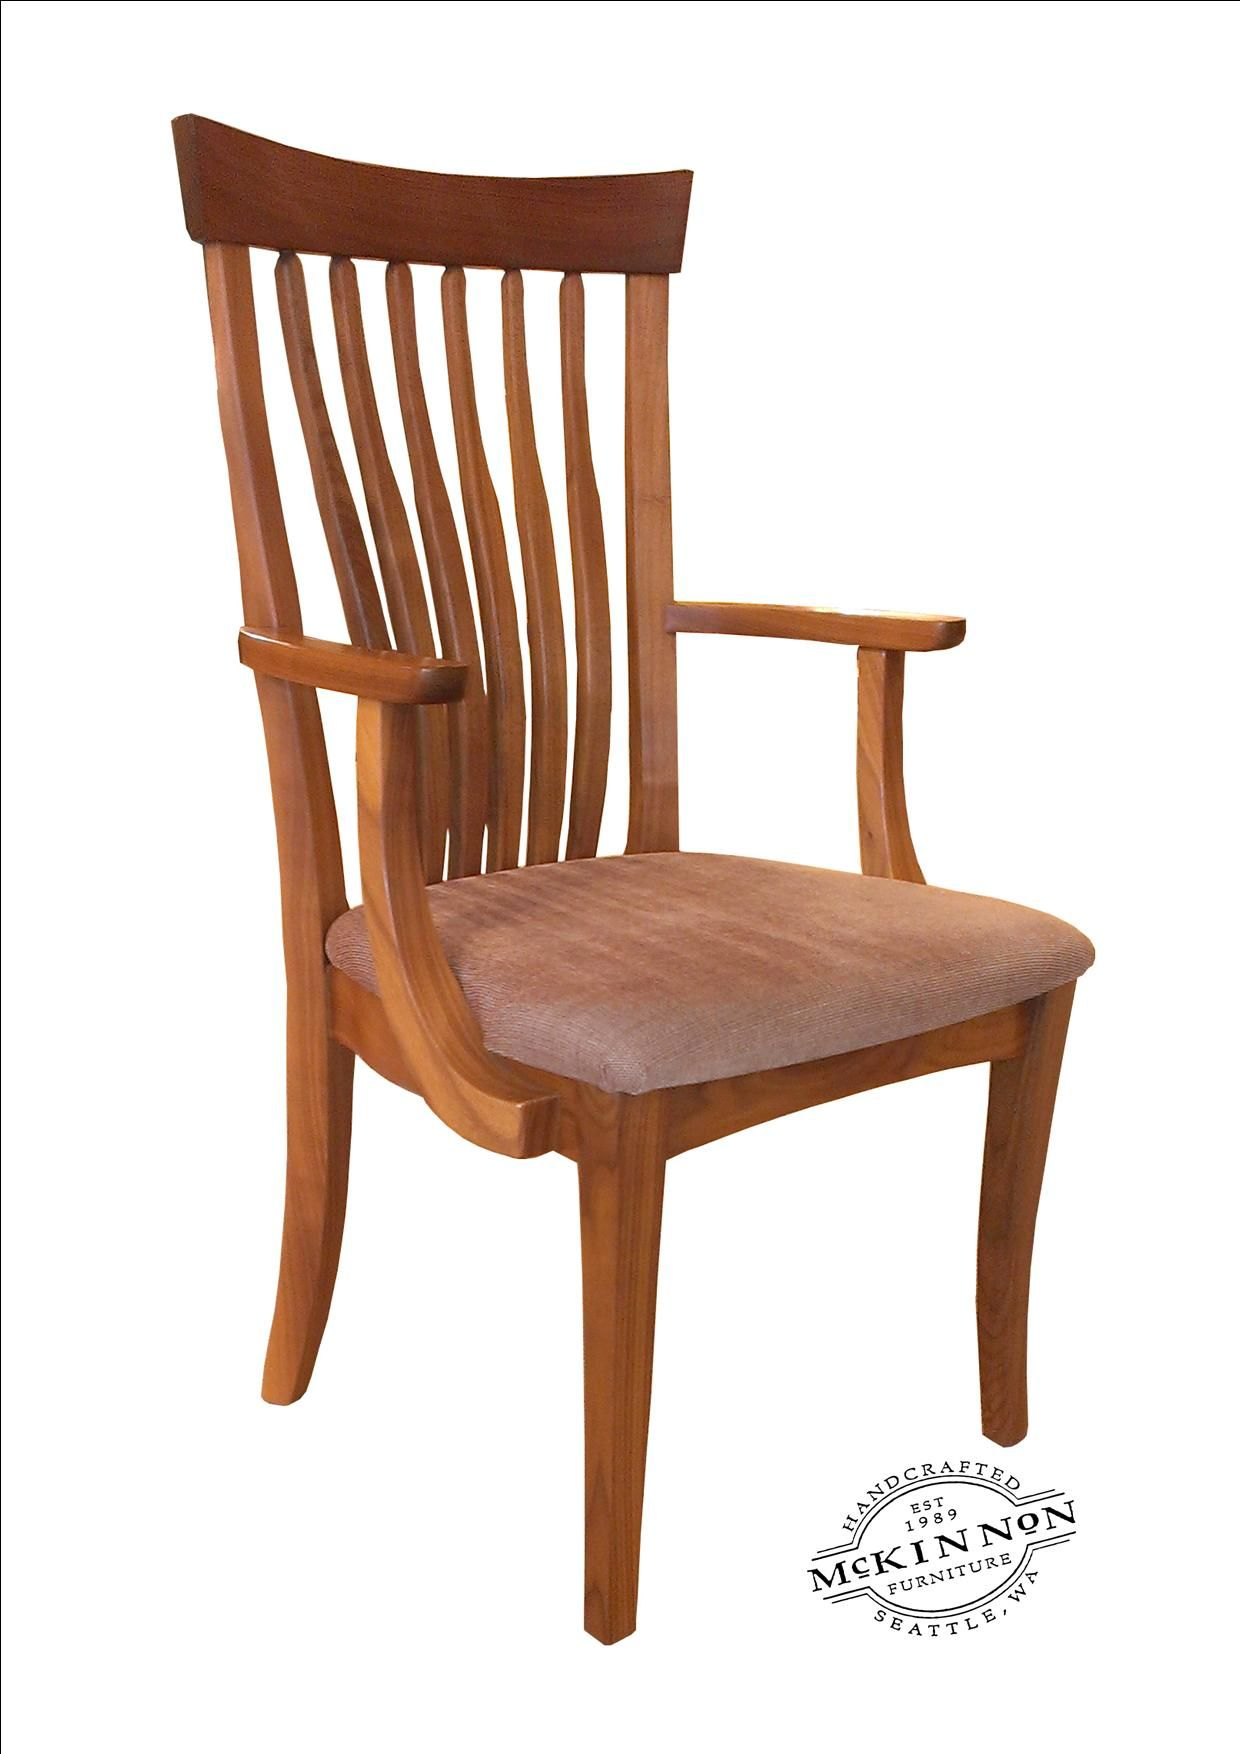 Pacific High Back with Fleur arms and upholstered seat